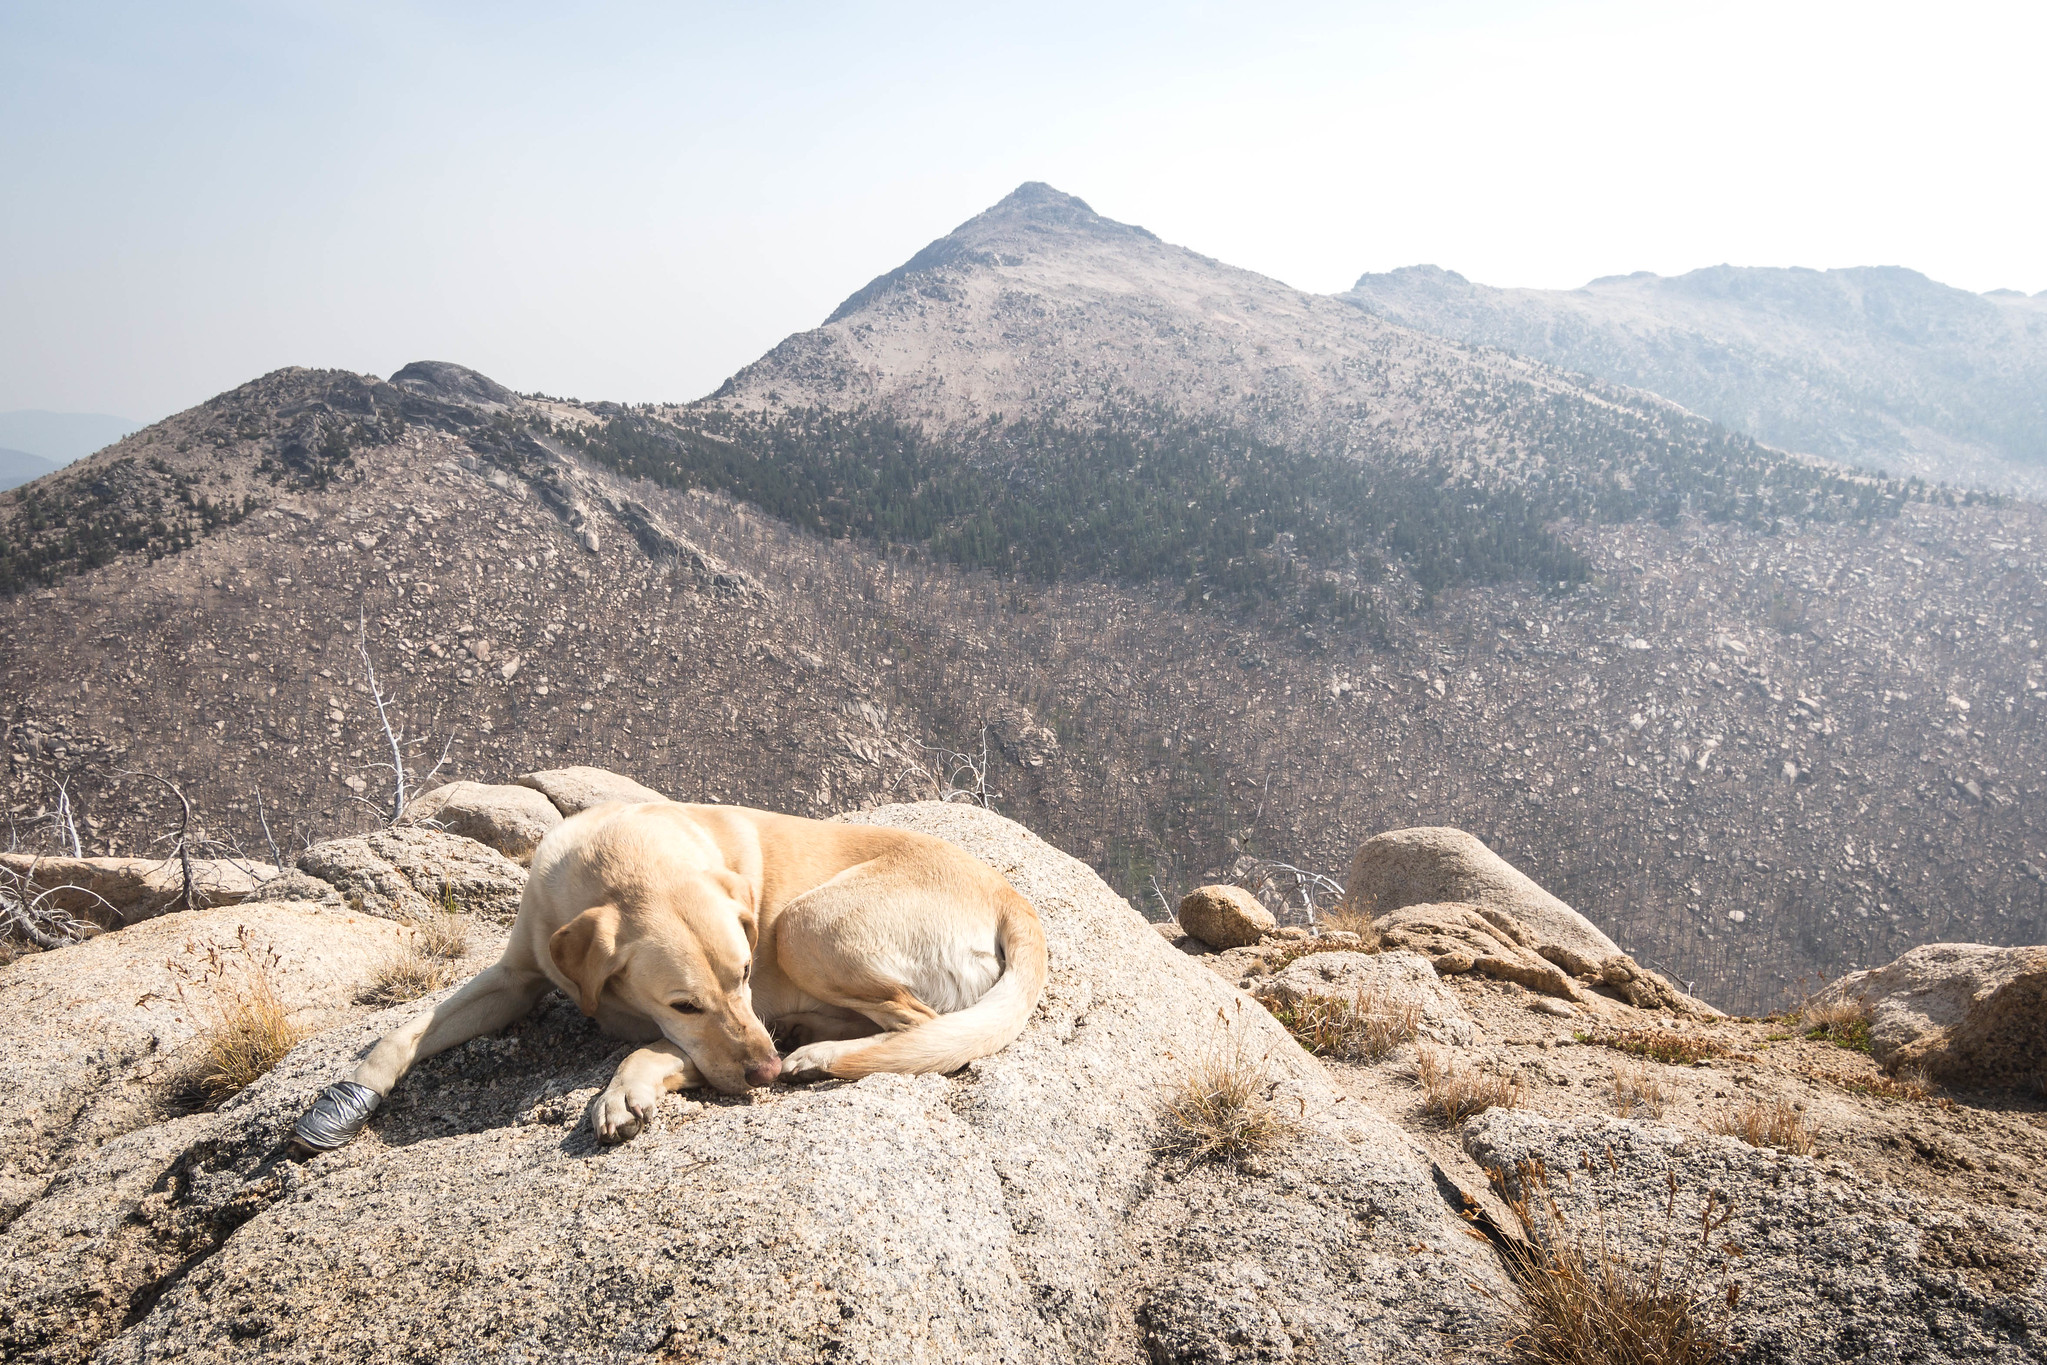 Summit dogs on Topaz Mountain